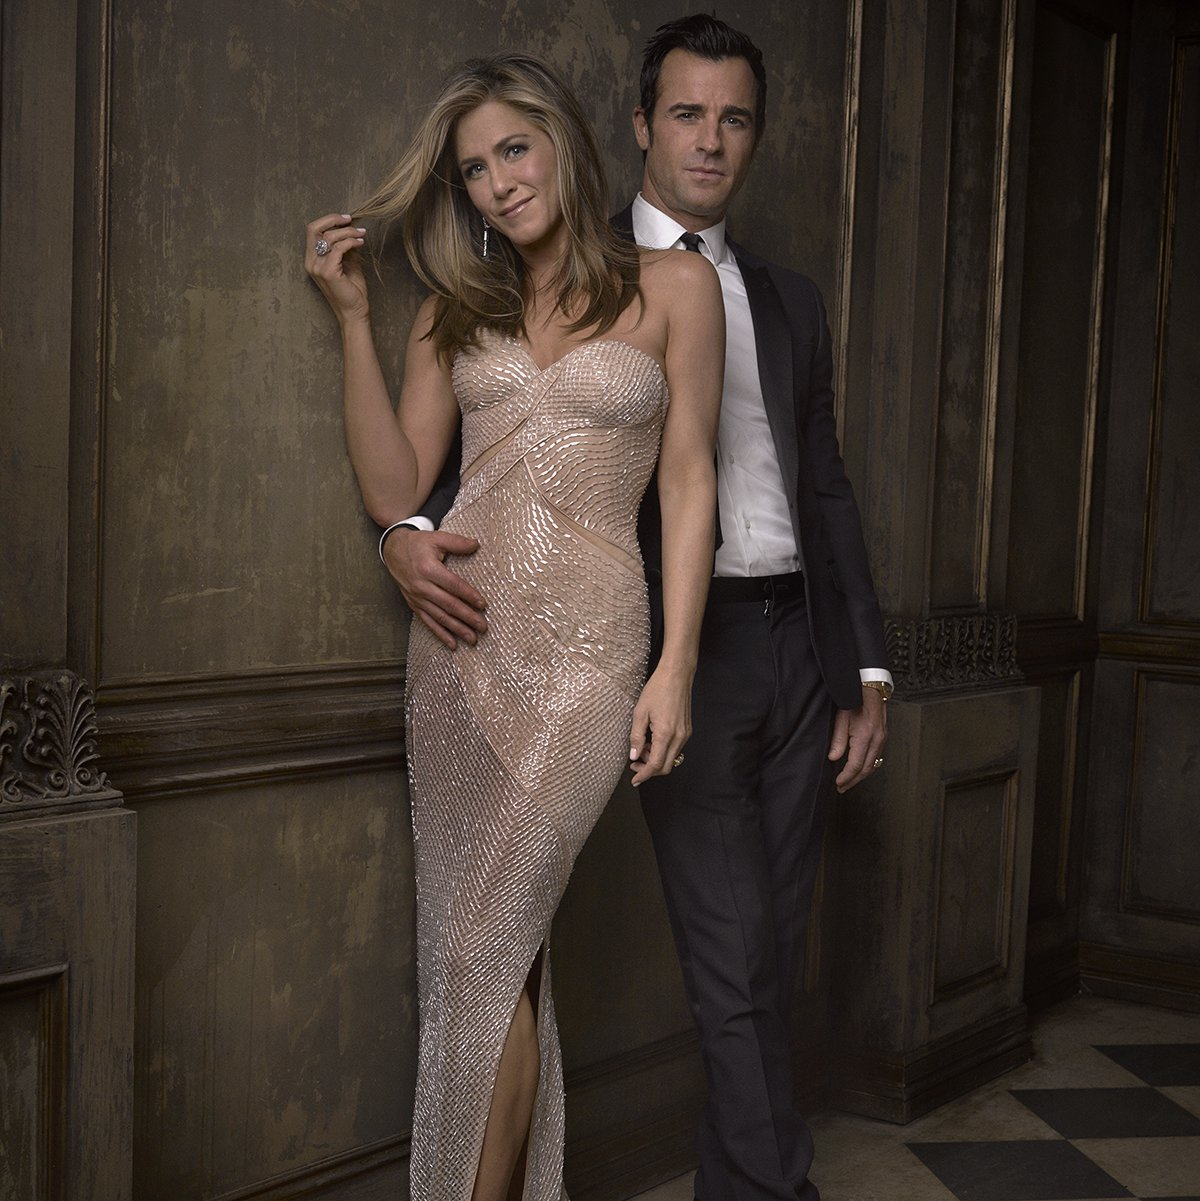 Vanity-Fair-Oscars-2015-Party-Mark-Seliger-Portraits-Jennifer-Aniston-Justin-Theroux-Photo[1]